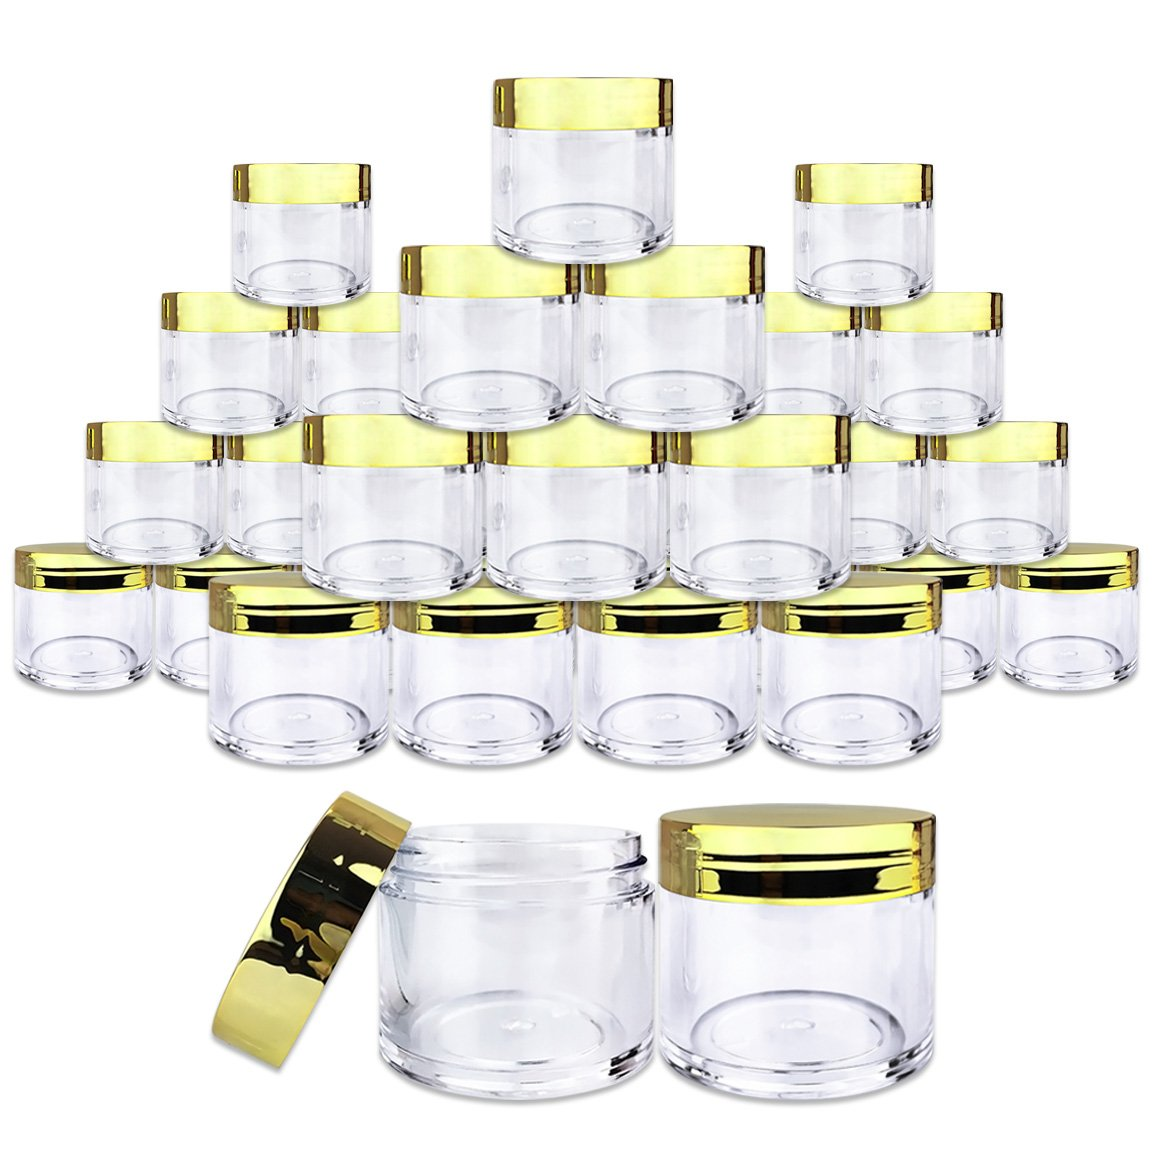 Beauticom 30 Pieces 30G/30ML(1 Oz) Round Clear Jars with Metallic GOLD Flat Top Lids for Herbs, Spices, Loose Leaf Teas, Coffee & Other Foods- BPA Free